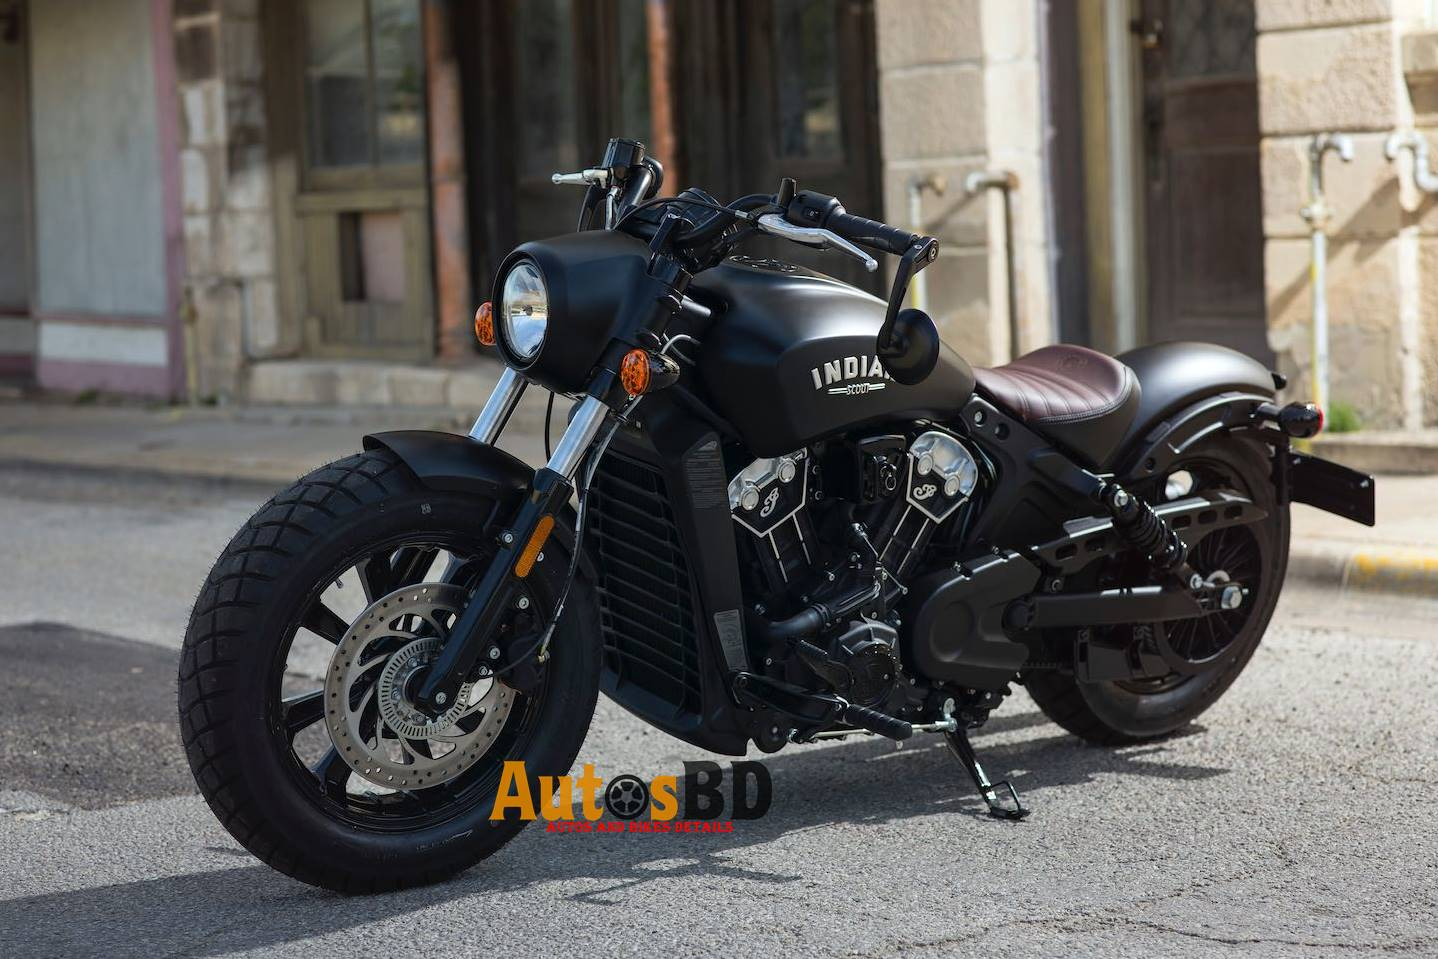 Indian Scout Bobber Motorcycle Price in India